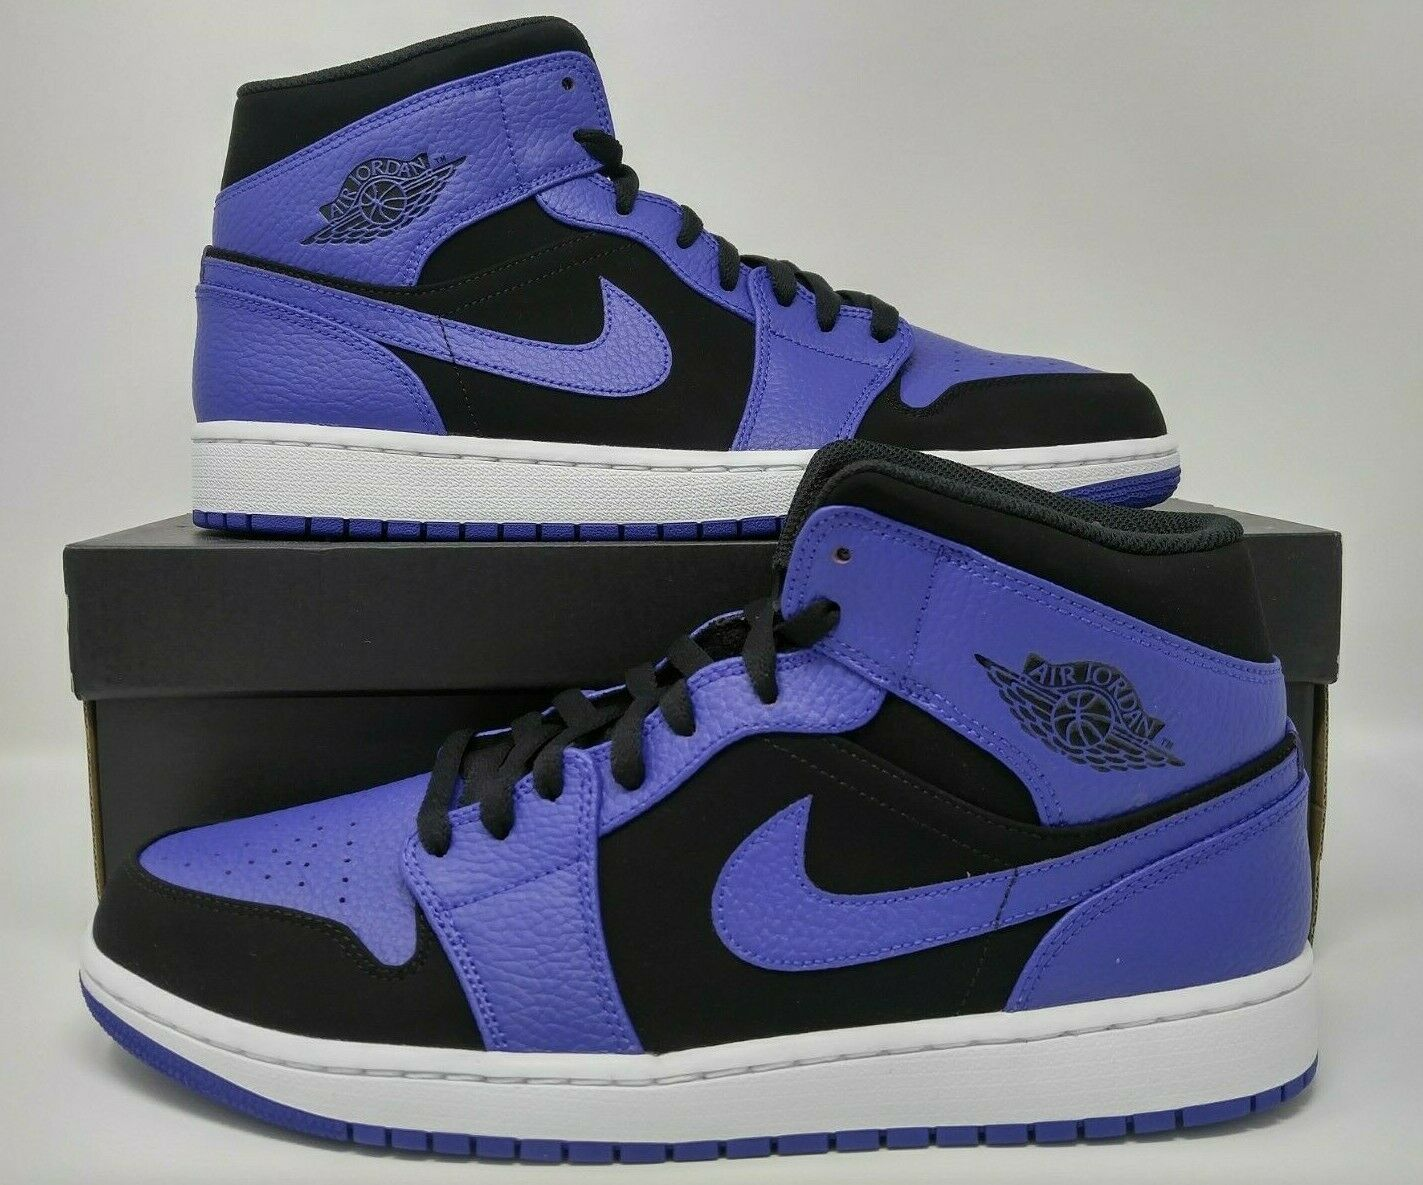 Nike Air Jordan Retro I 1 Mid Black Dark Concord White Purple Men's 554724-051